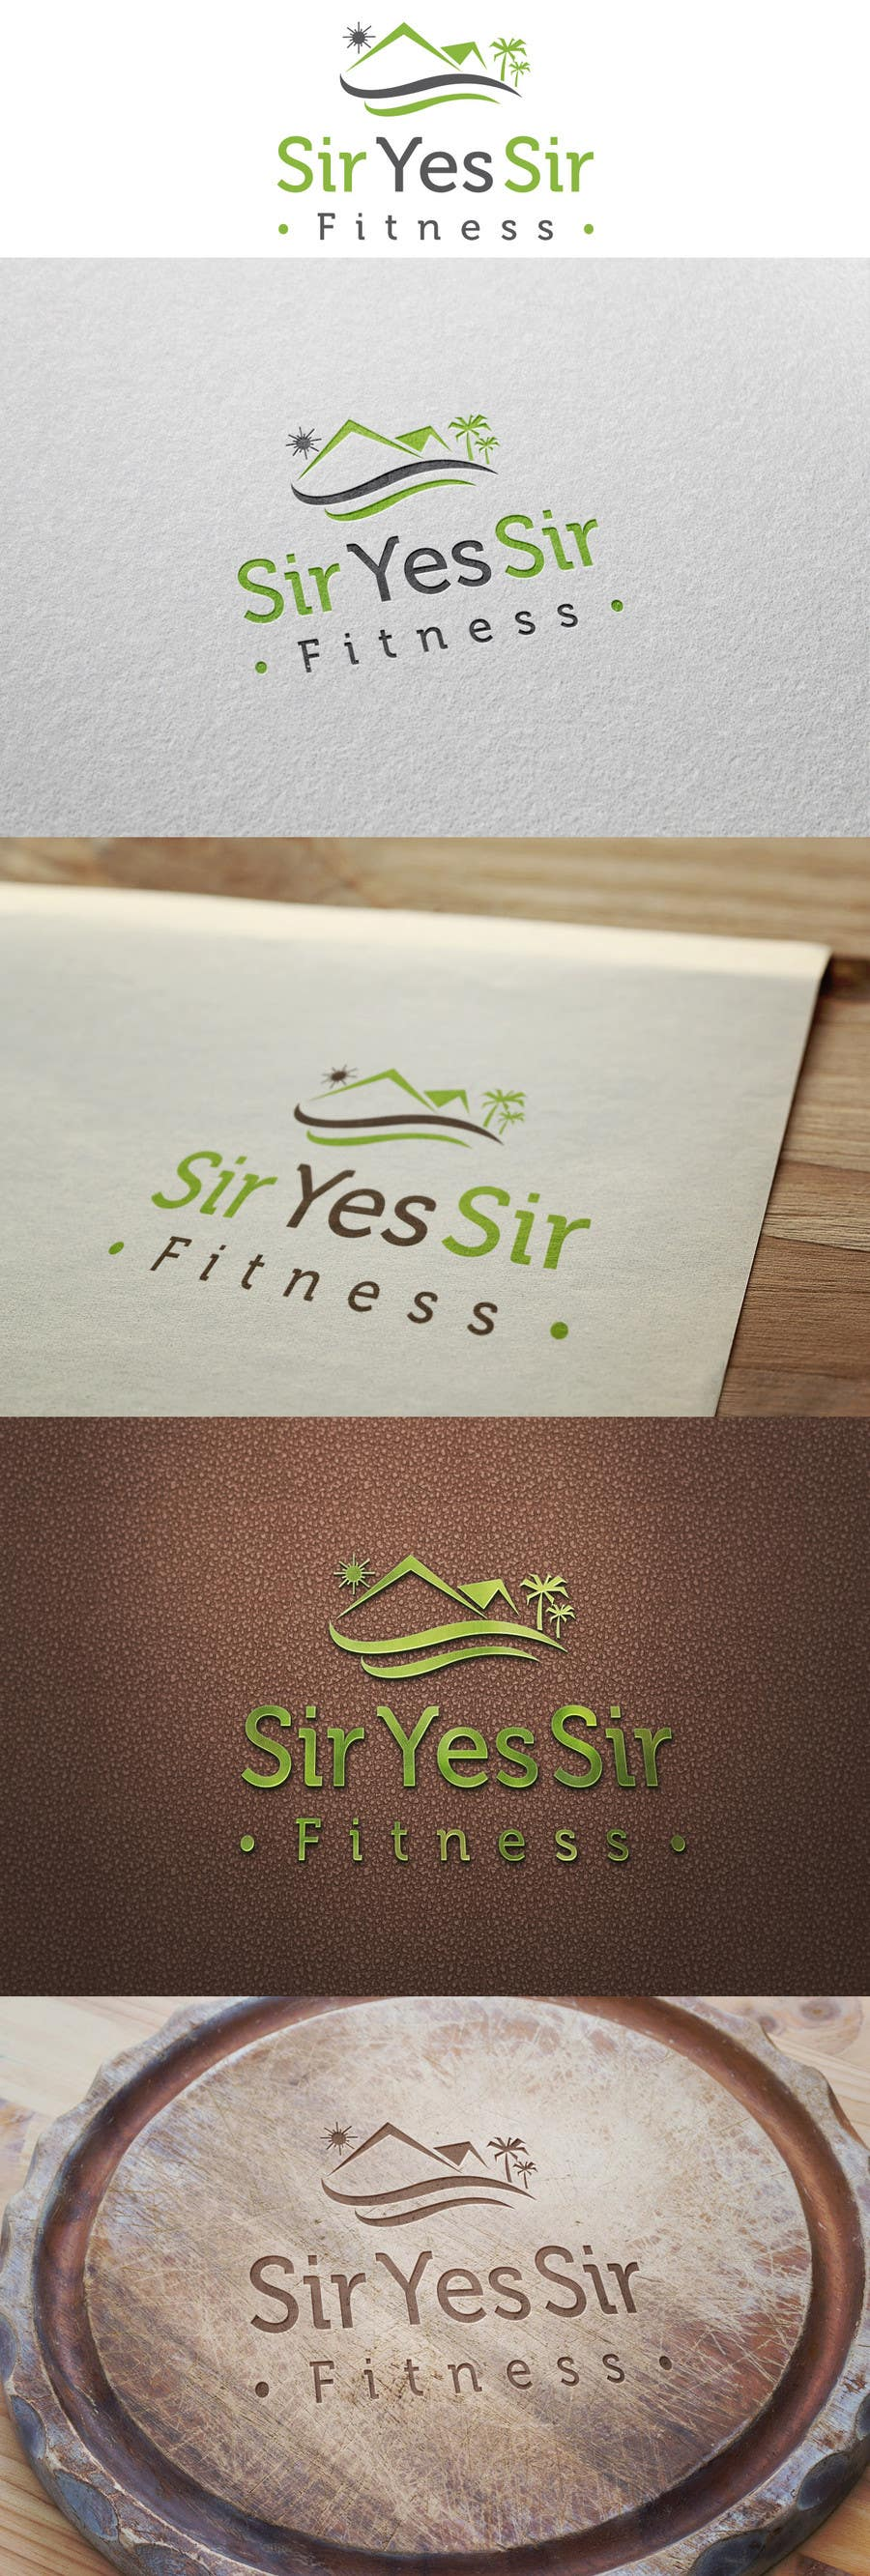 Конкурсная заявка №233 для Logo Design for Fitness Business